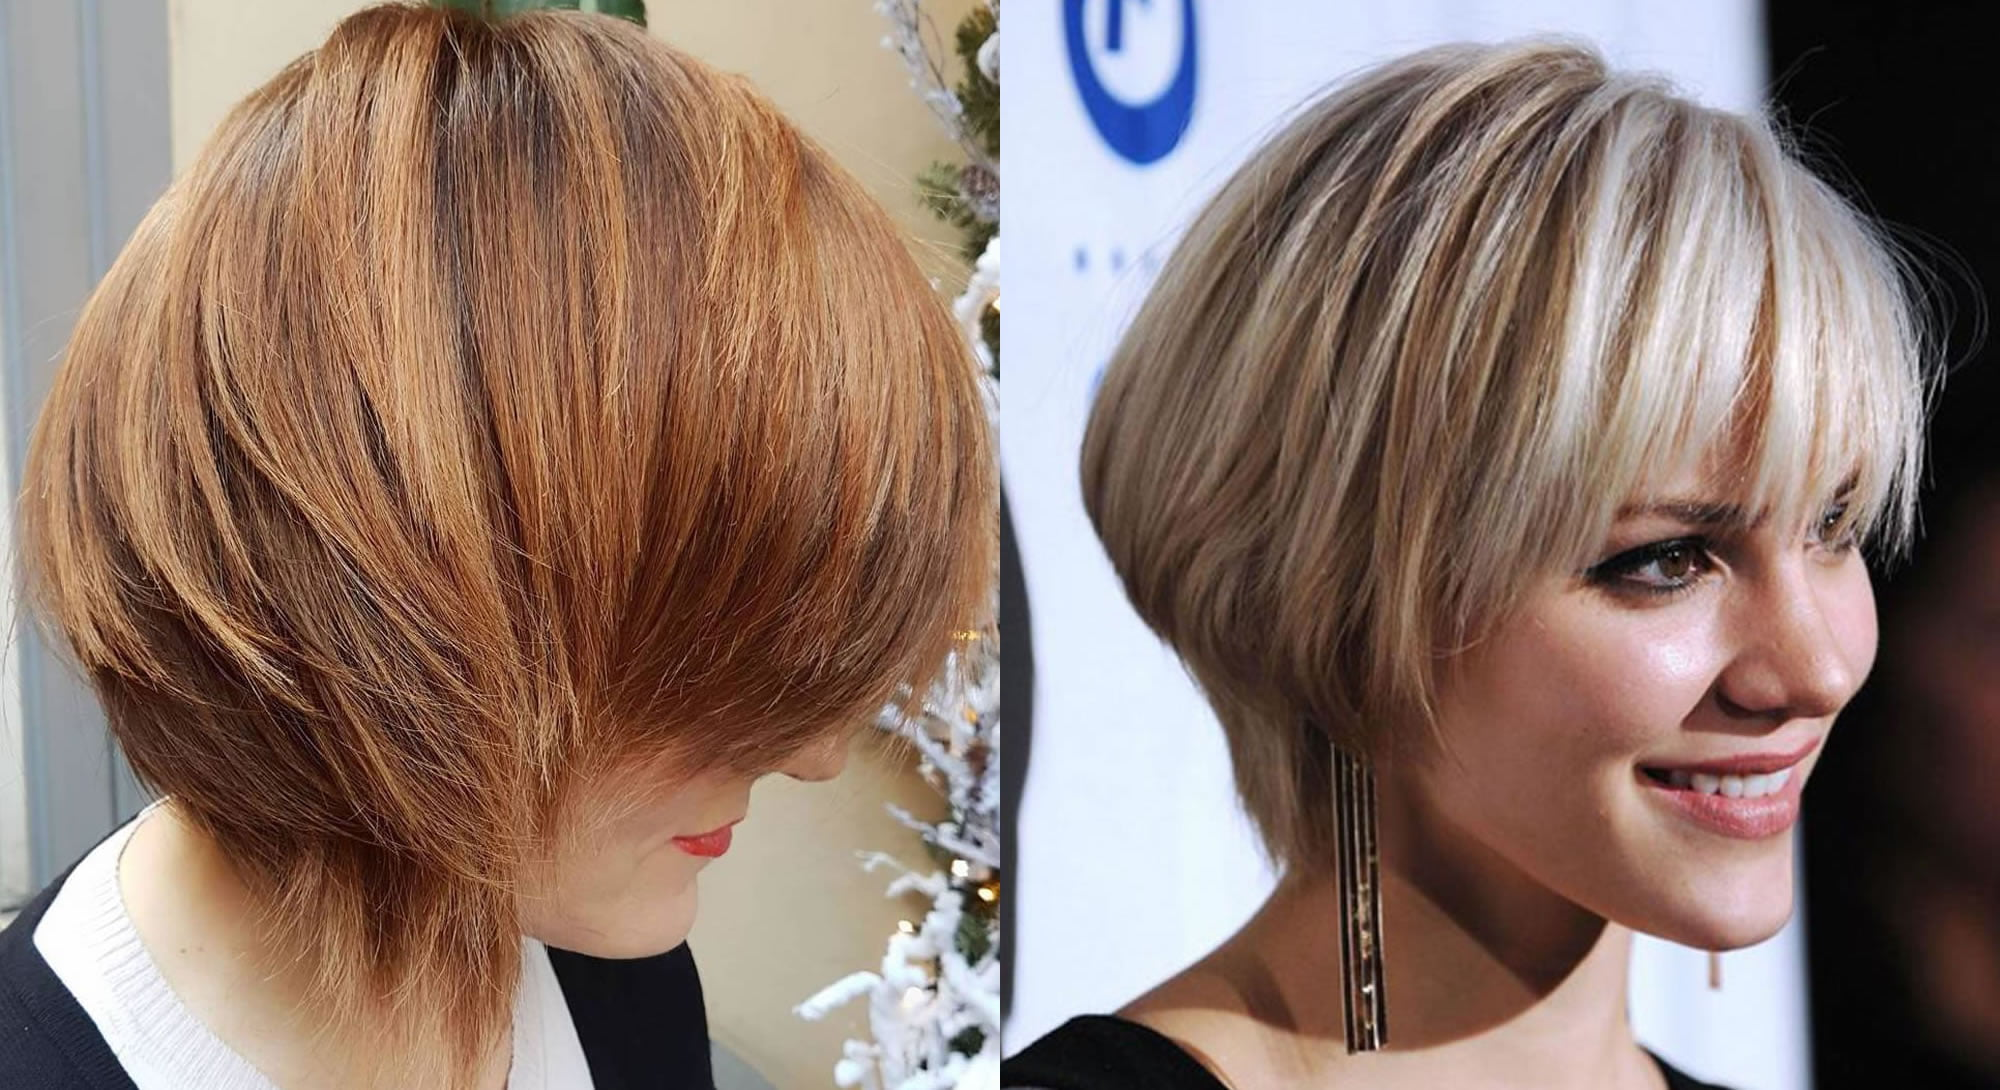 30 Ravishing Short Bob Hair Cuts With Bangs & New Hair